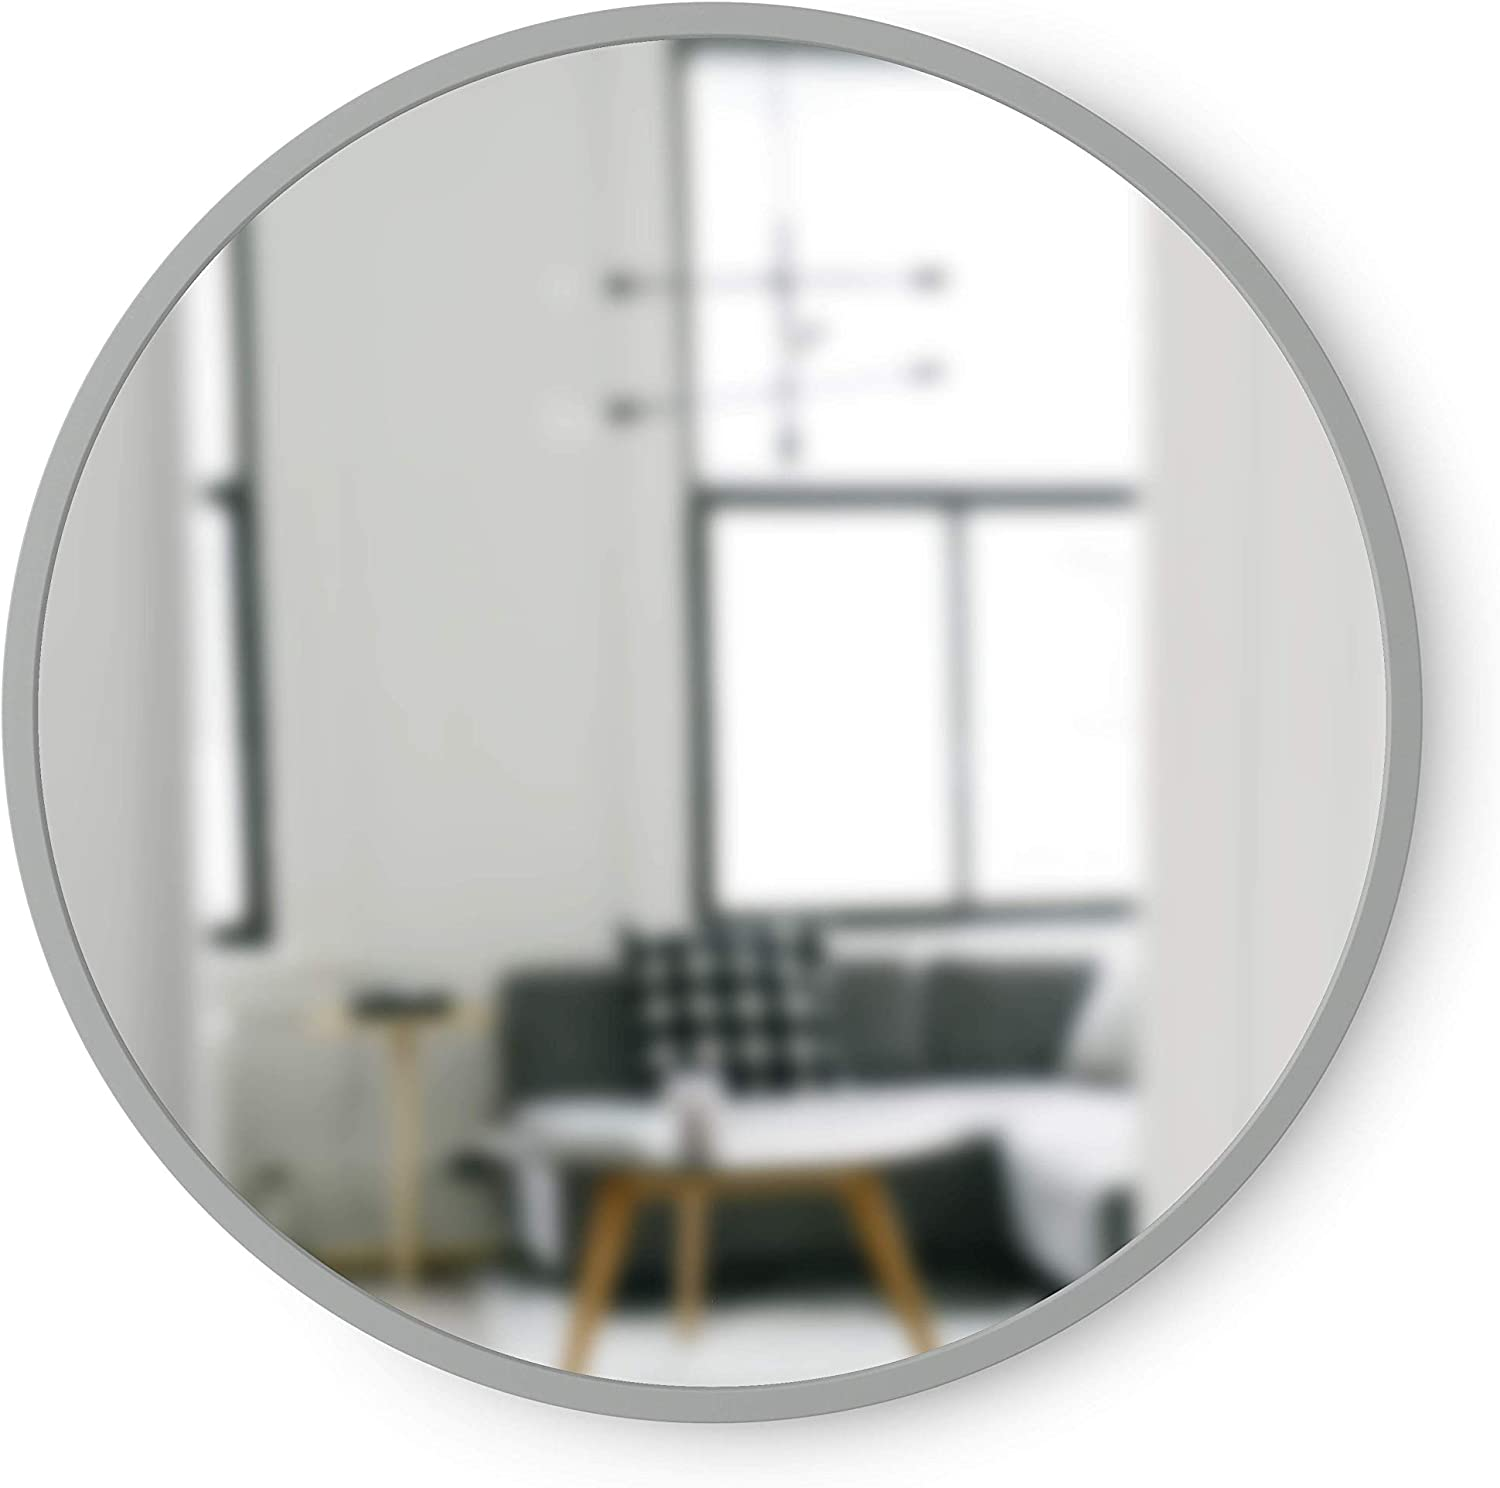 Umbra, Grey Hub Rubber Frame-18-Inch Round Mirror for Entryways, Bathrooms, Living Rooms and More, Doubles as Modern Wall Art, 18-Inch